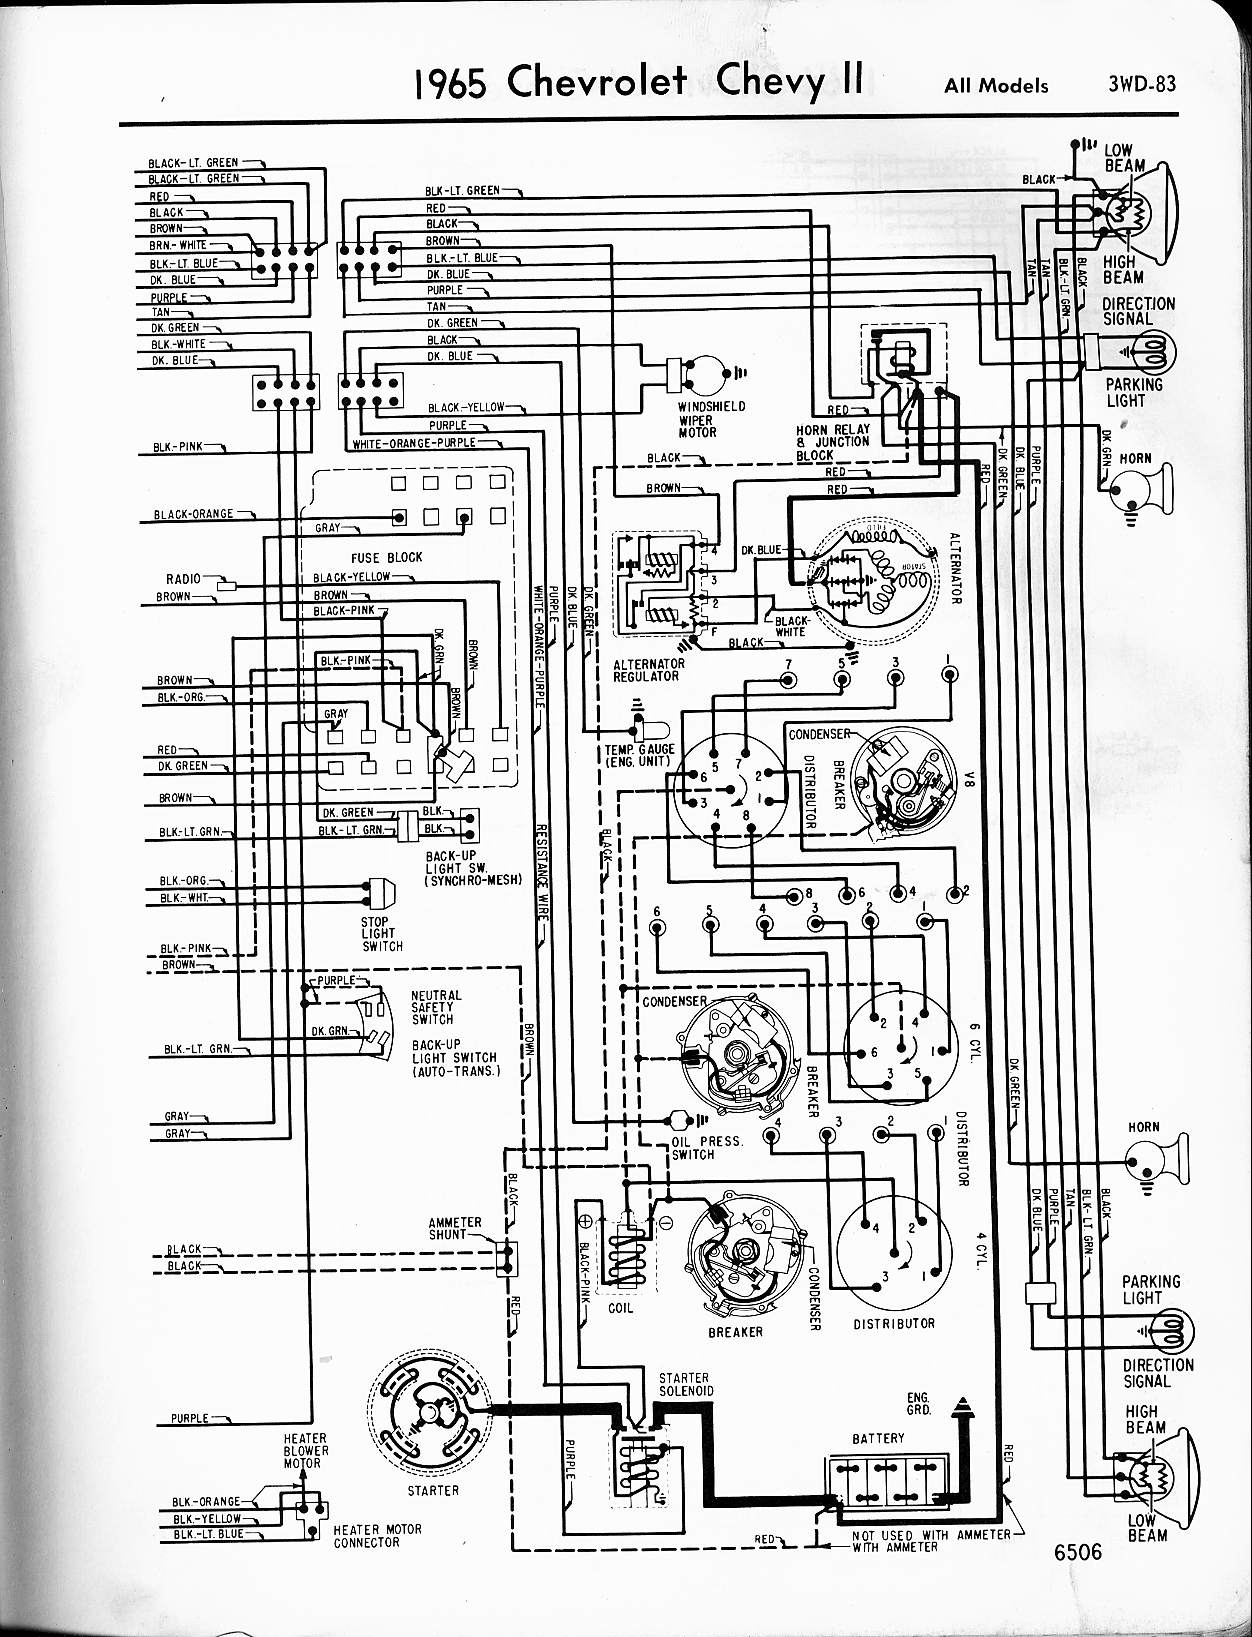 1982 Camaro Wiring Diagram Charging System 1967 Chevy Truck Ignition Switch Opinions About 71 Chevrolet Wire Schematics Rh Mychampagnedaze Com Chevelle Transmission